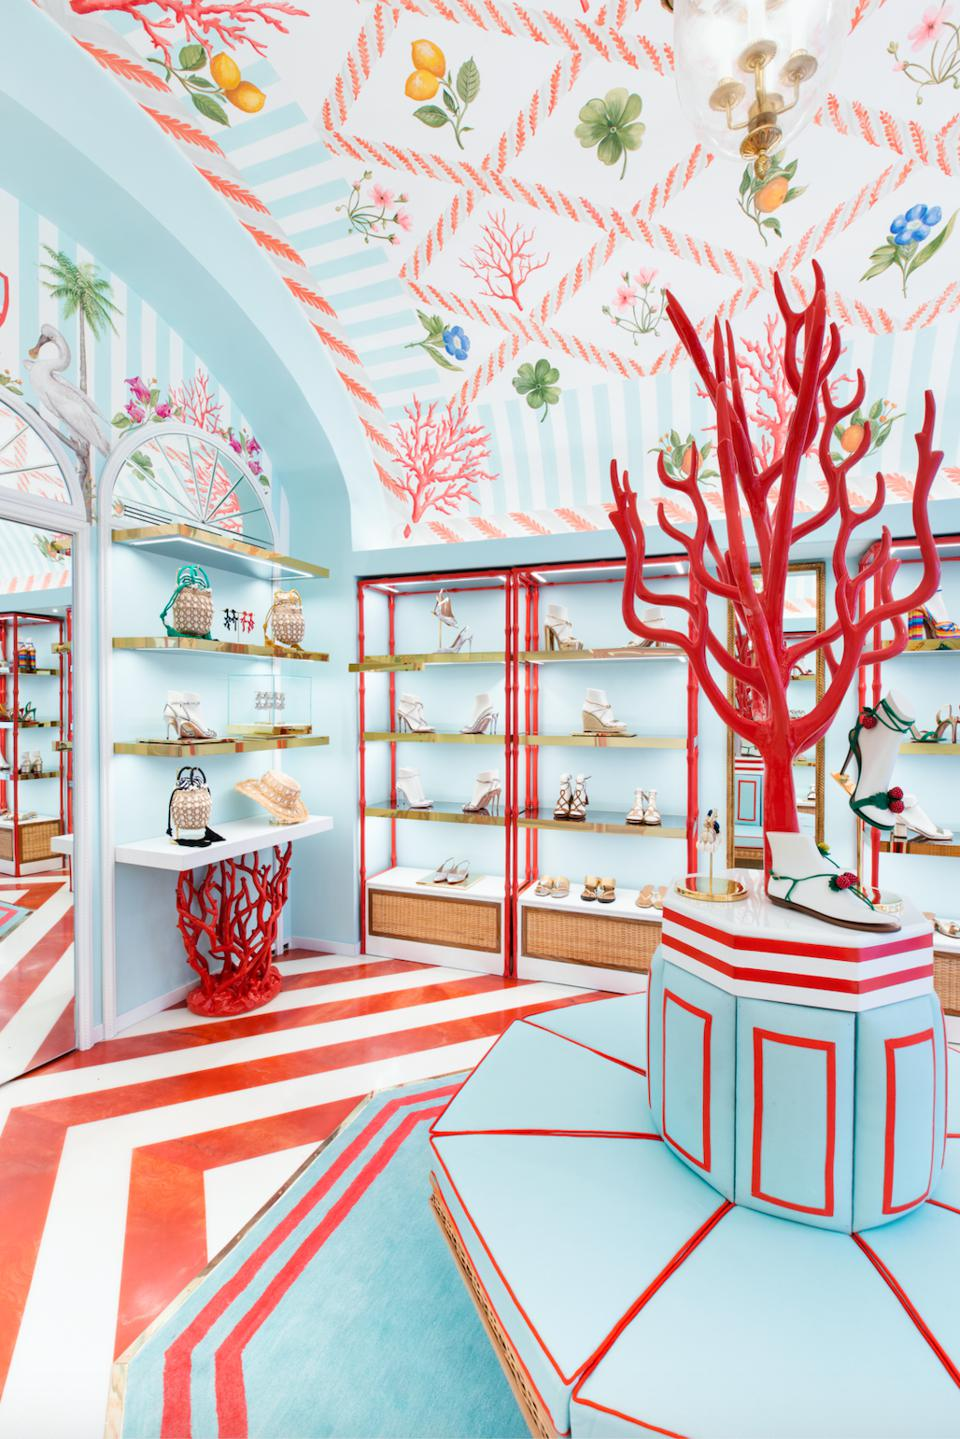 Inside of Aquazurra shoe boutique in Capri with a turquoise and orange color scheme with coral accents and traditional motif wallcovering